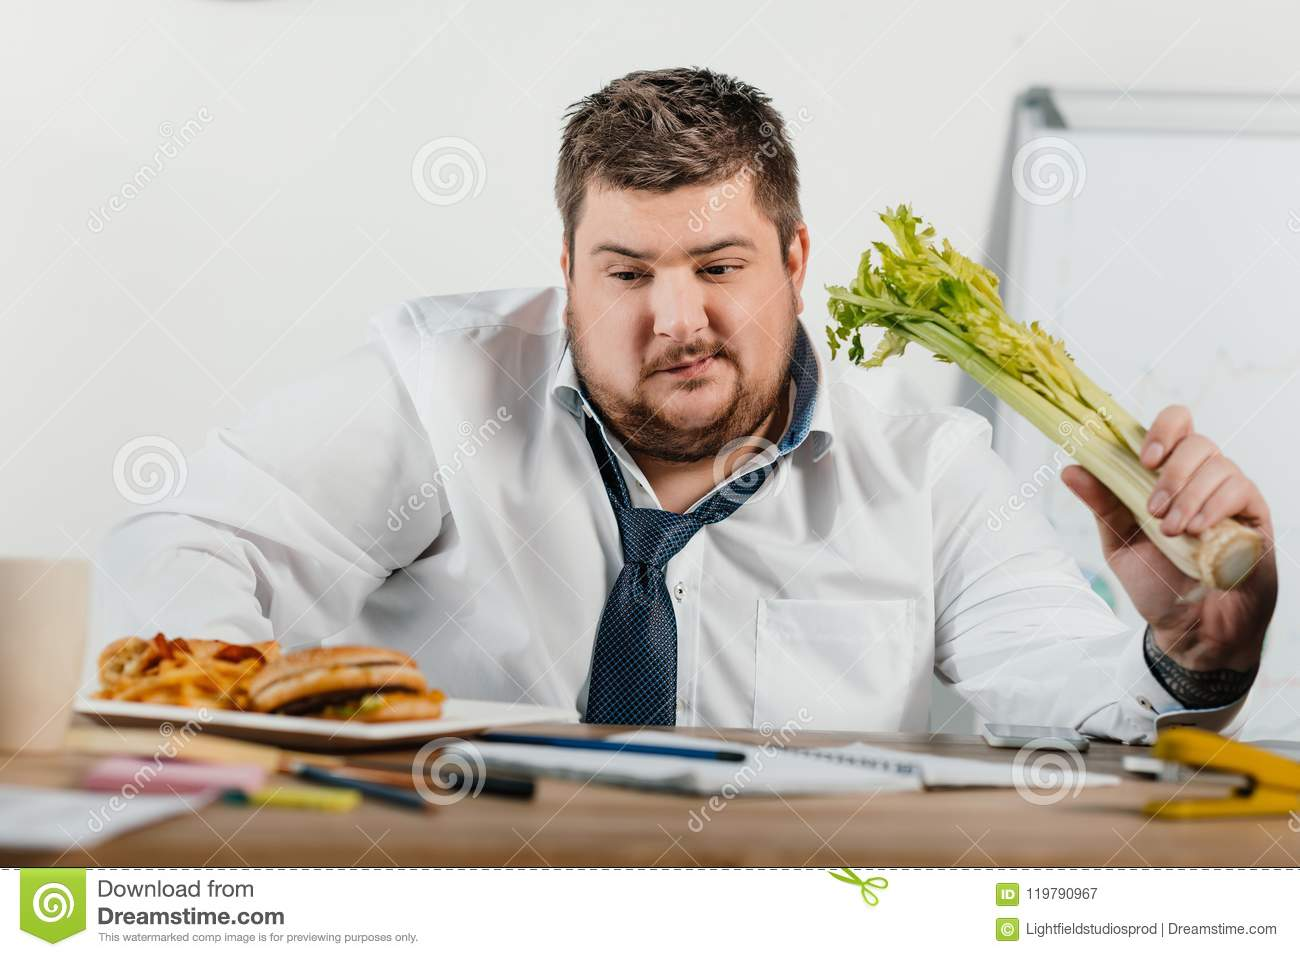 thoughtful overweight businessman choosing healthy or junk food at workplace